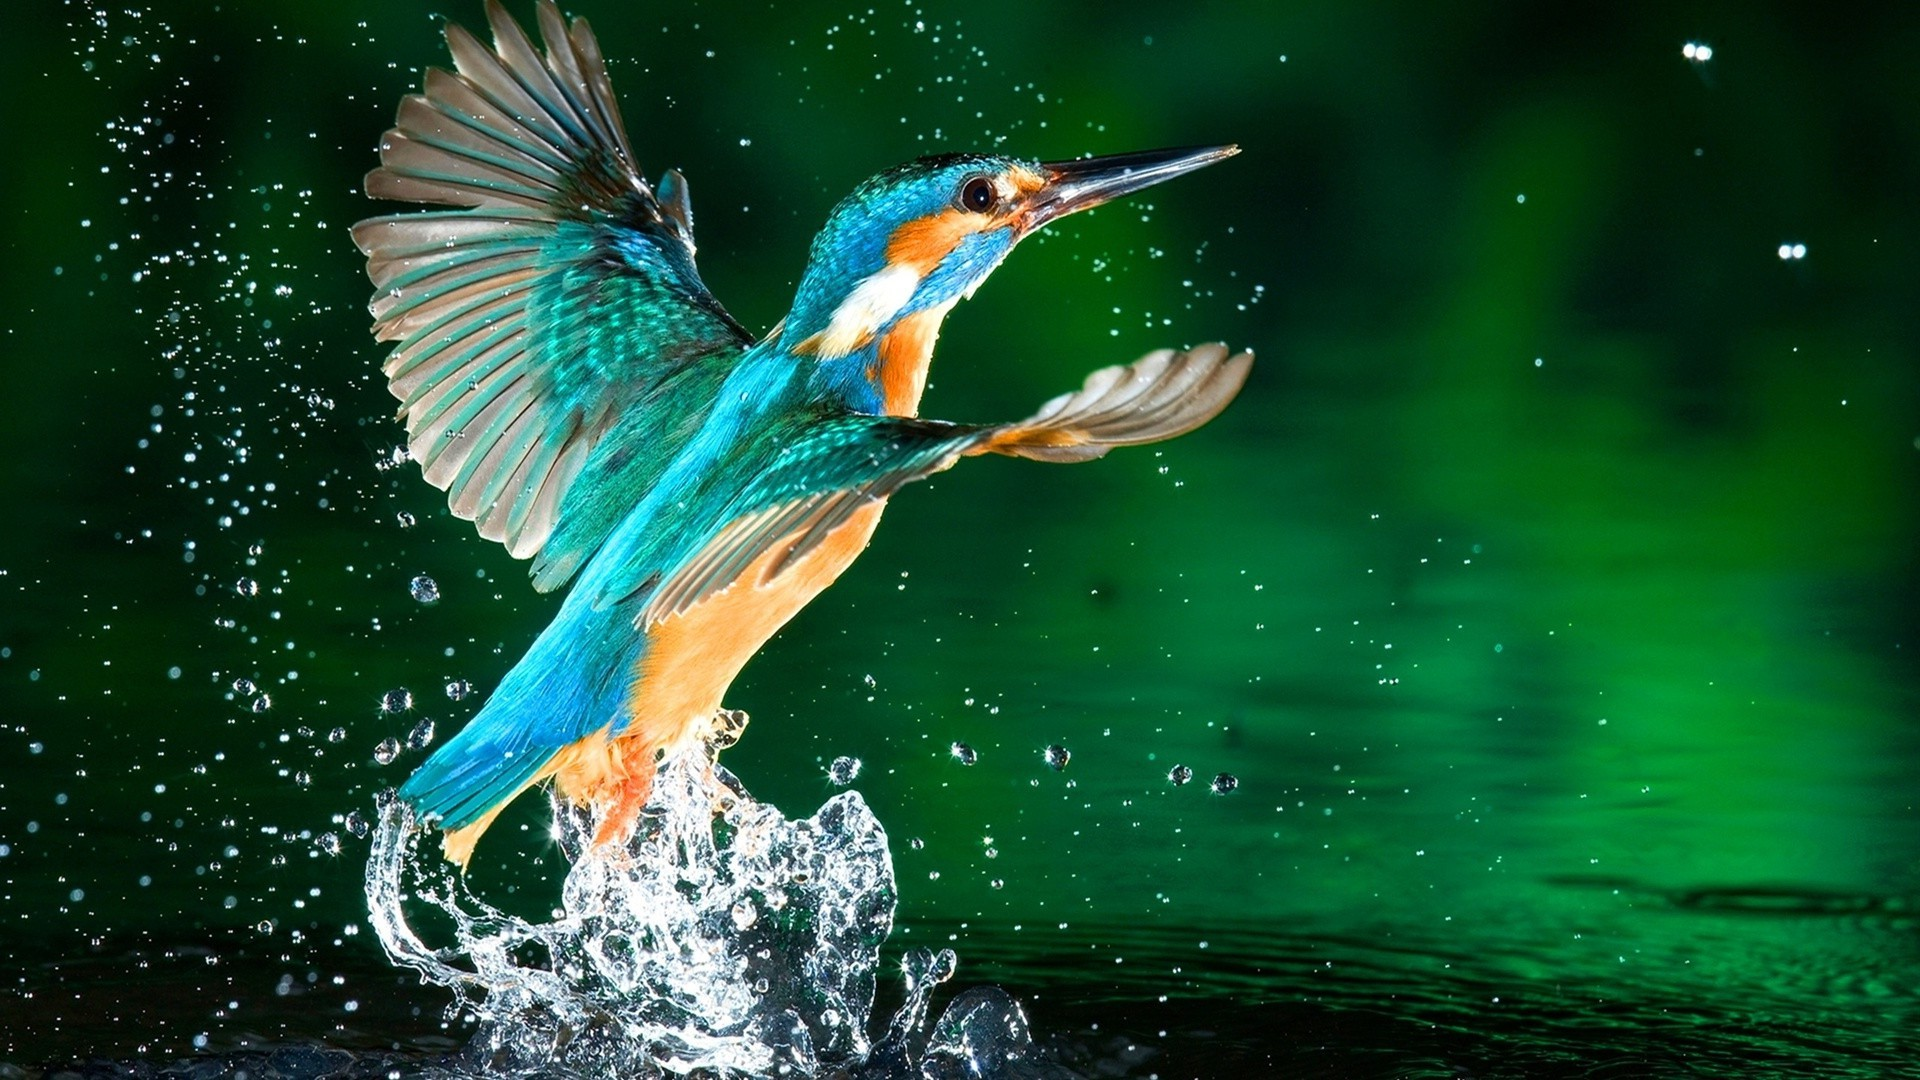 animals bird wildlife water nature animal fish fly beak lake